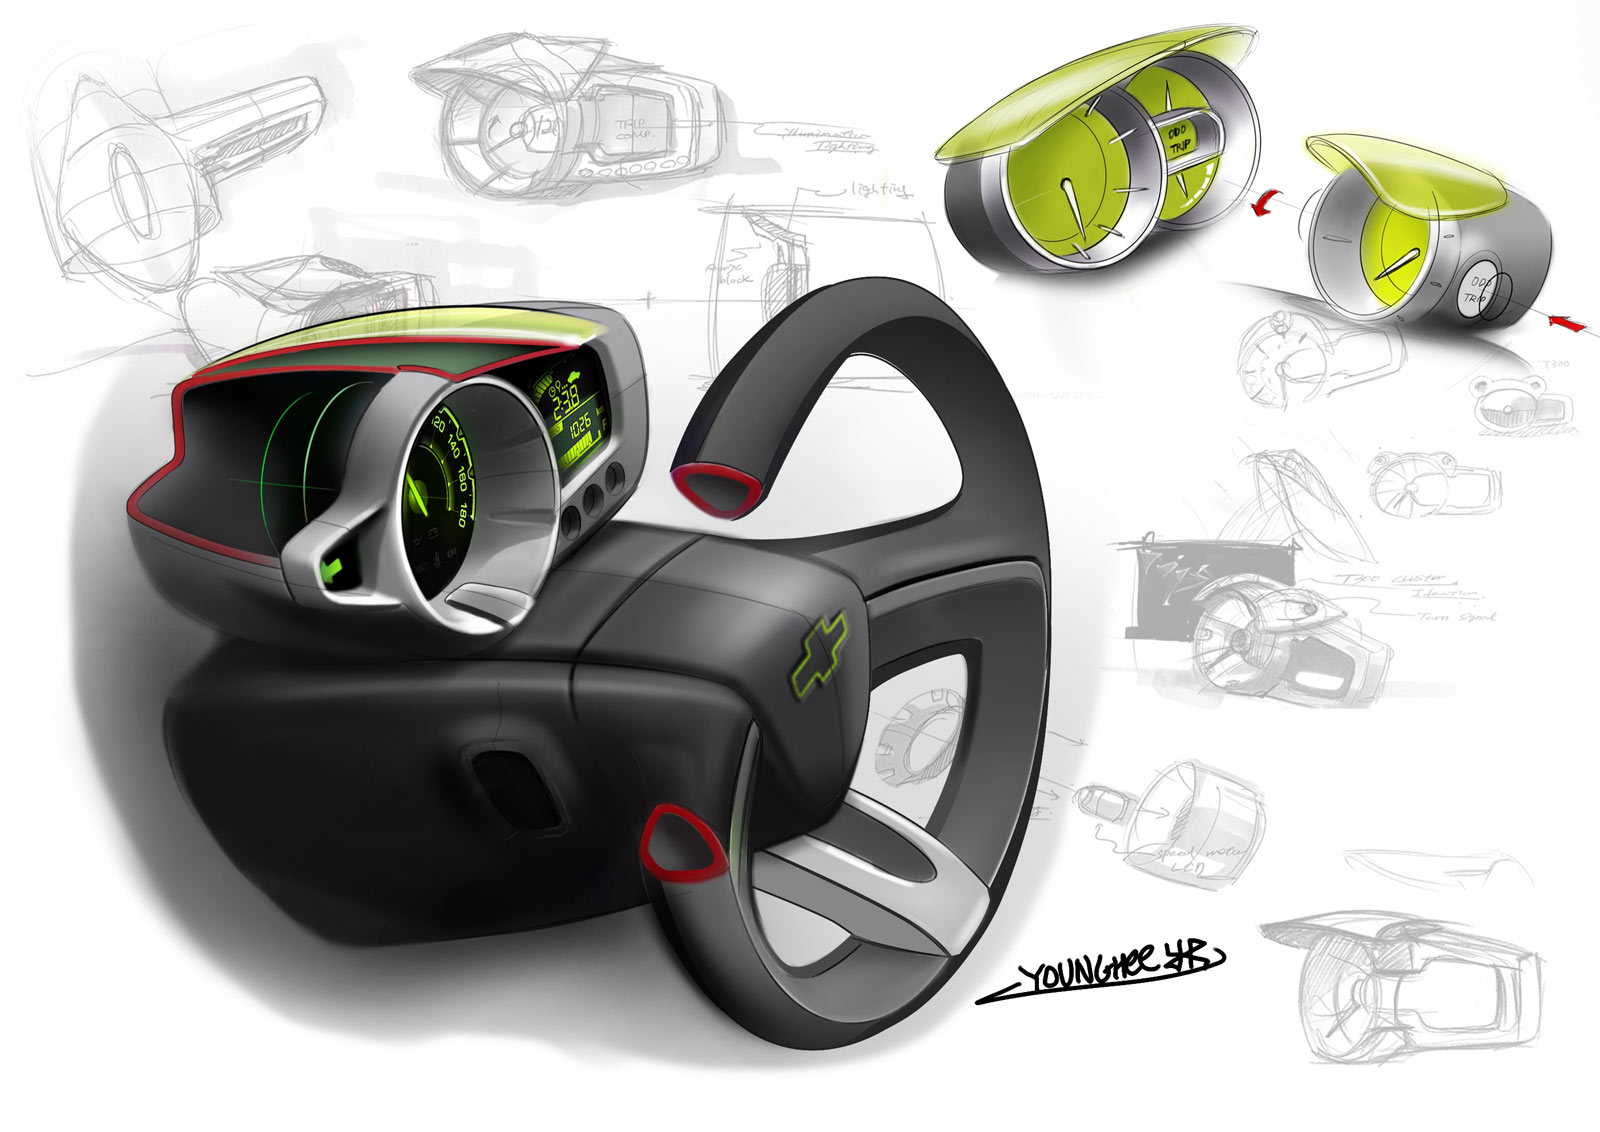 Chevrolet Spark Interior Design Sketch - Car Body Design